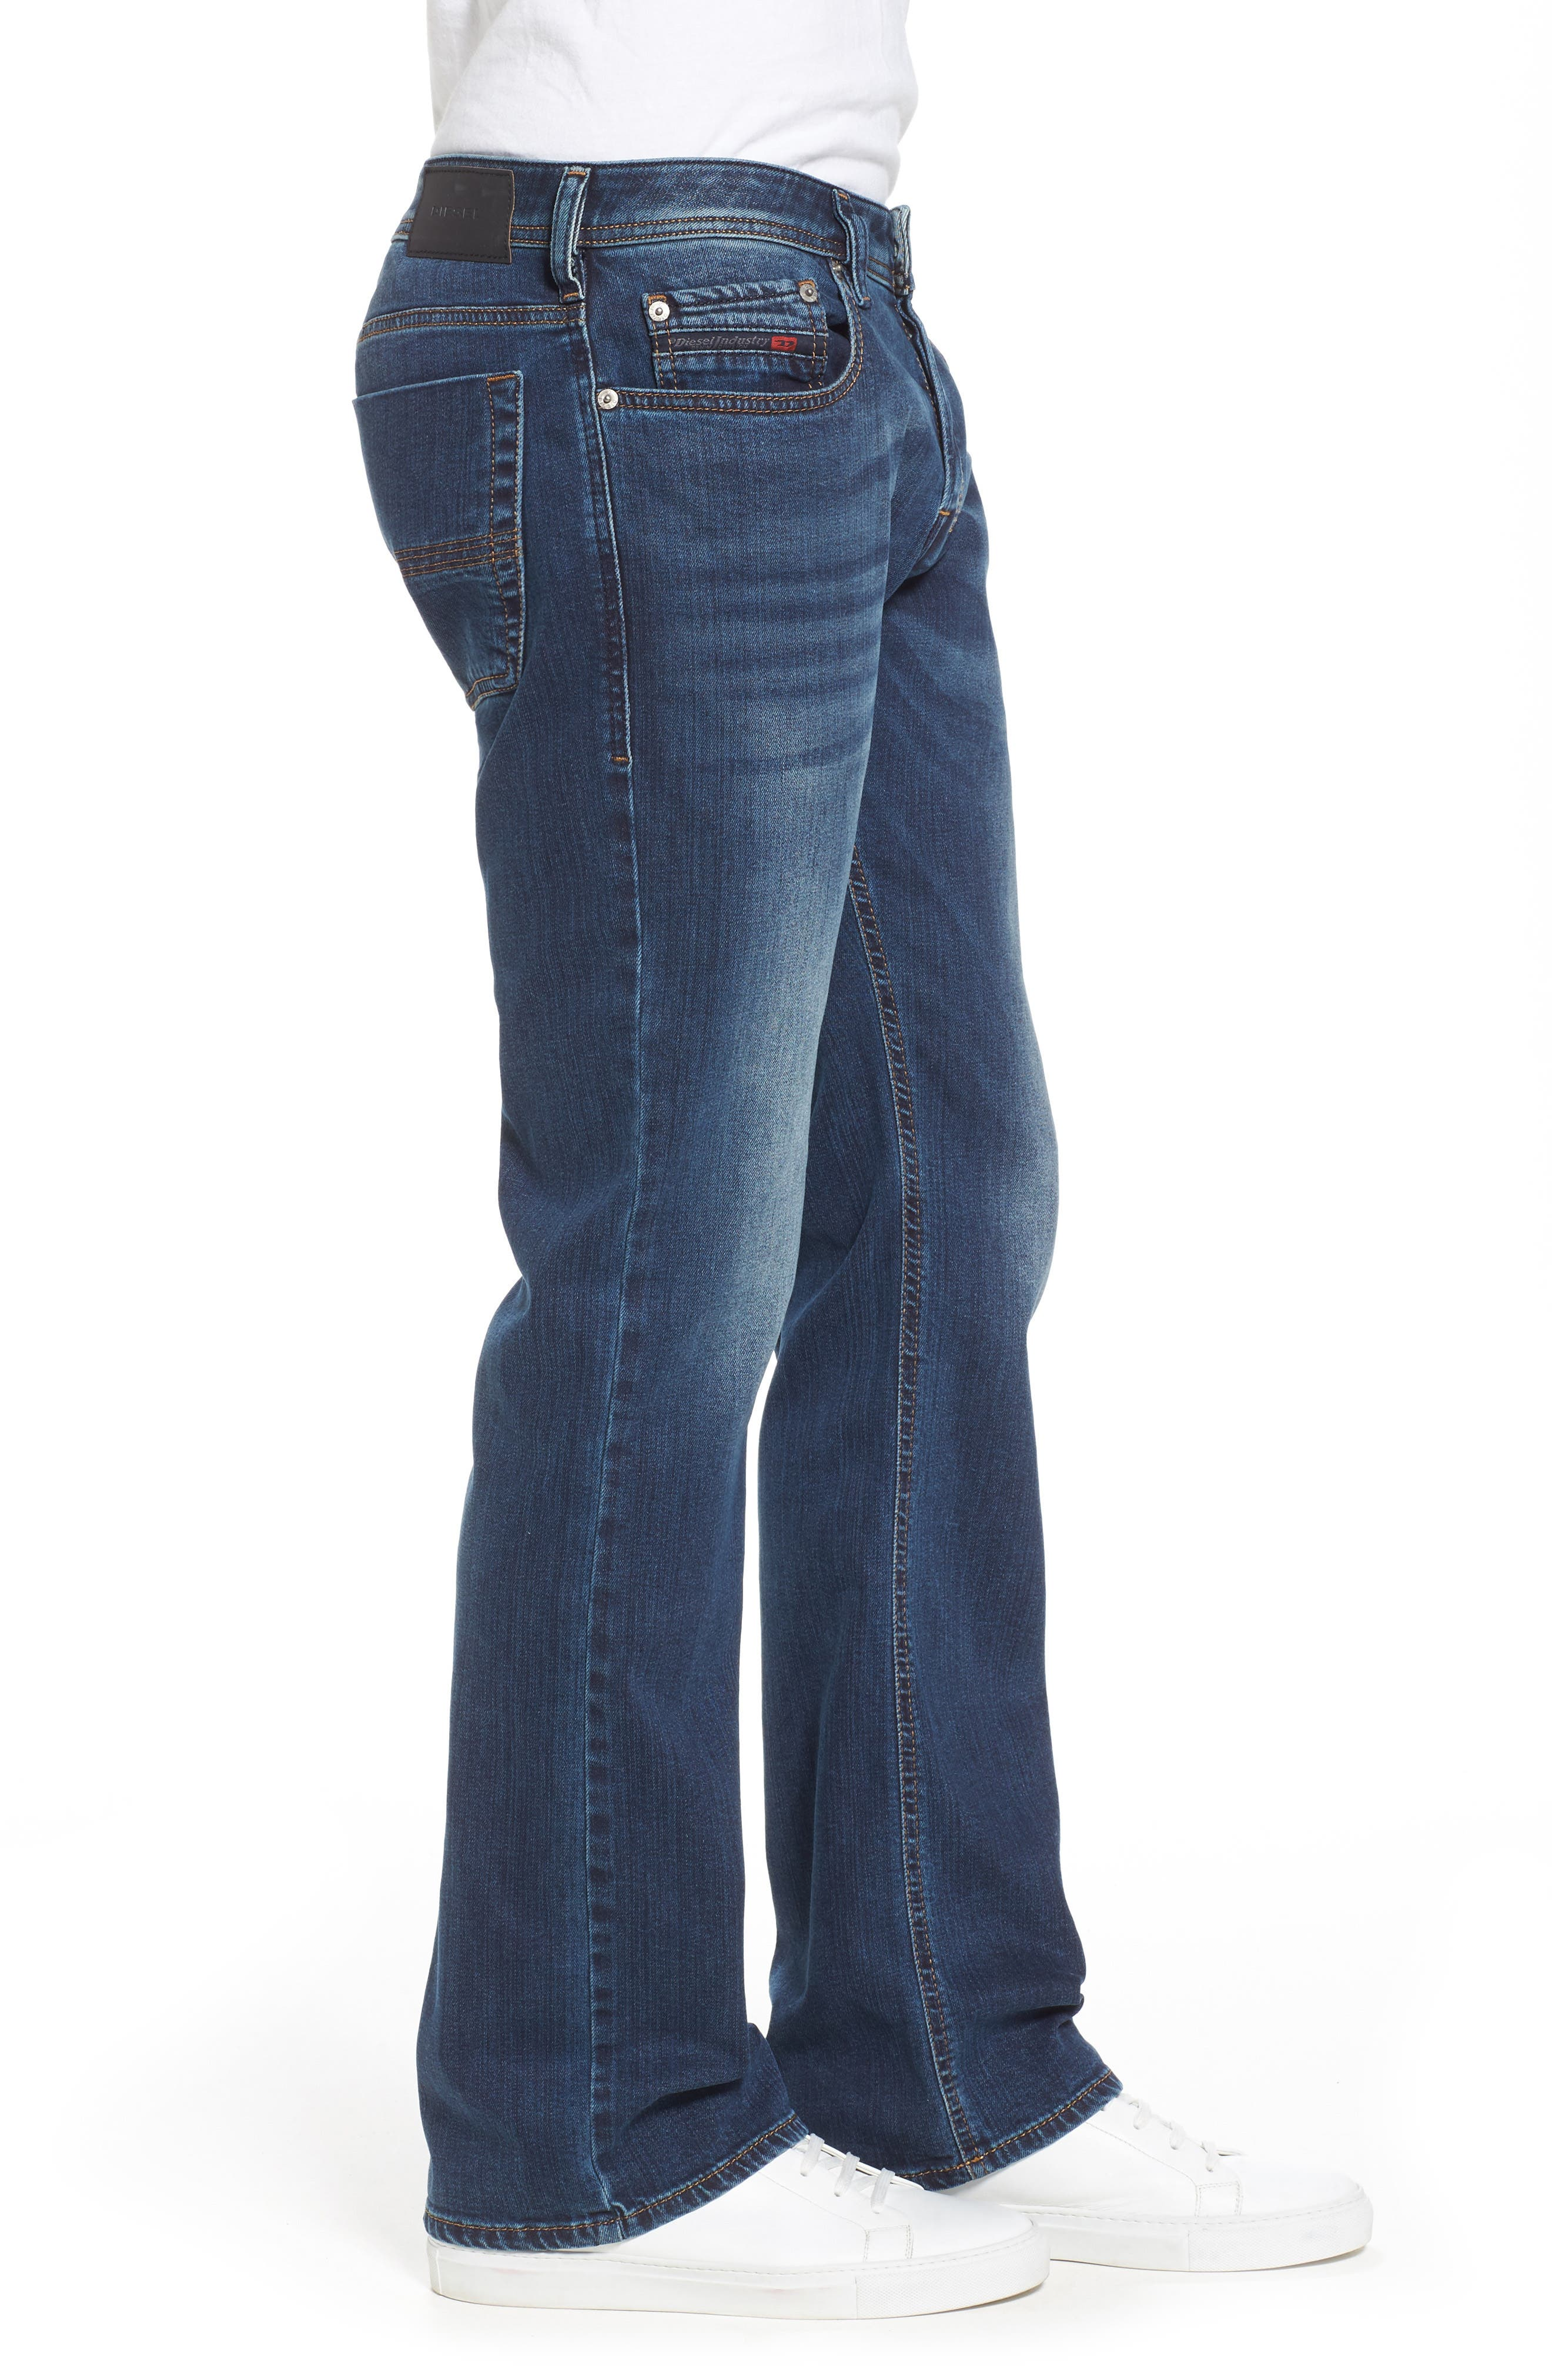 DIESEL<SUP>®</SUP>, Zatiny Bootcut Jeans, Alternate thumbnail 4, color, 084BU